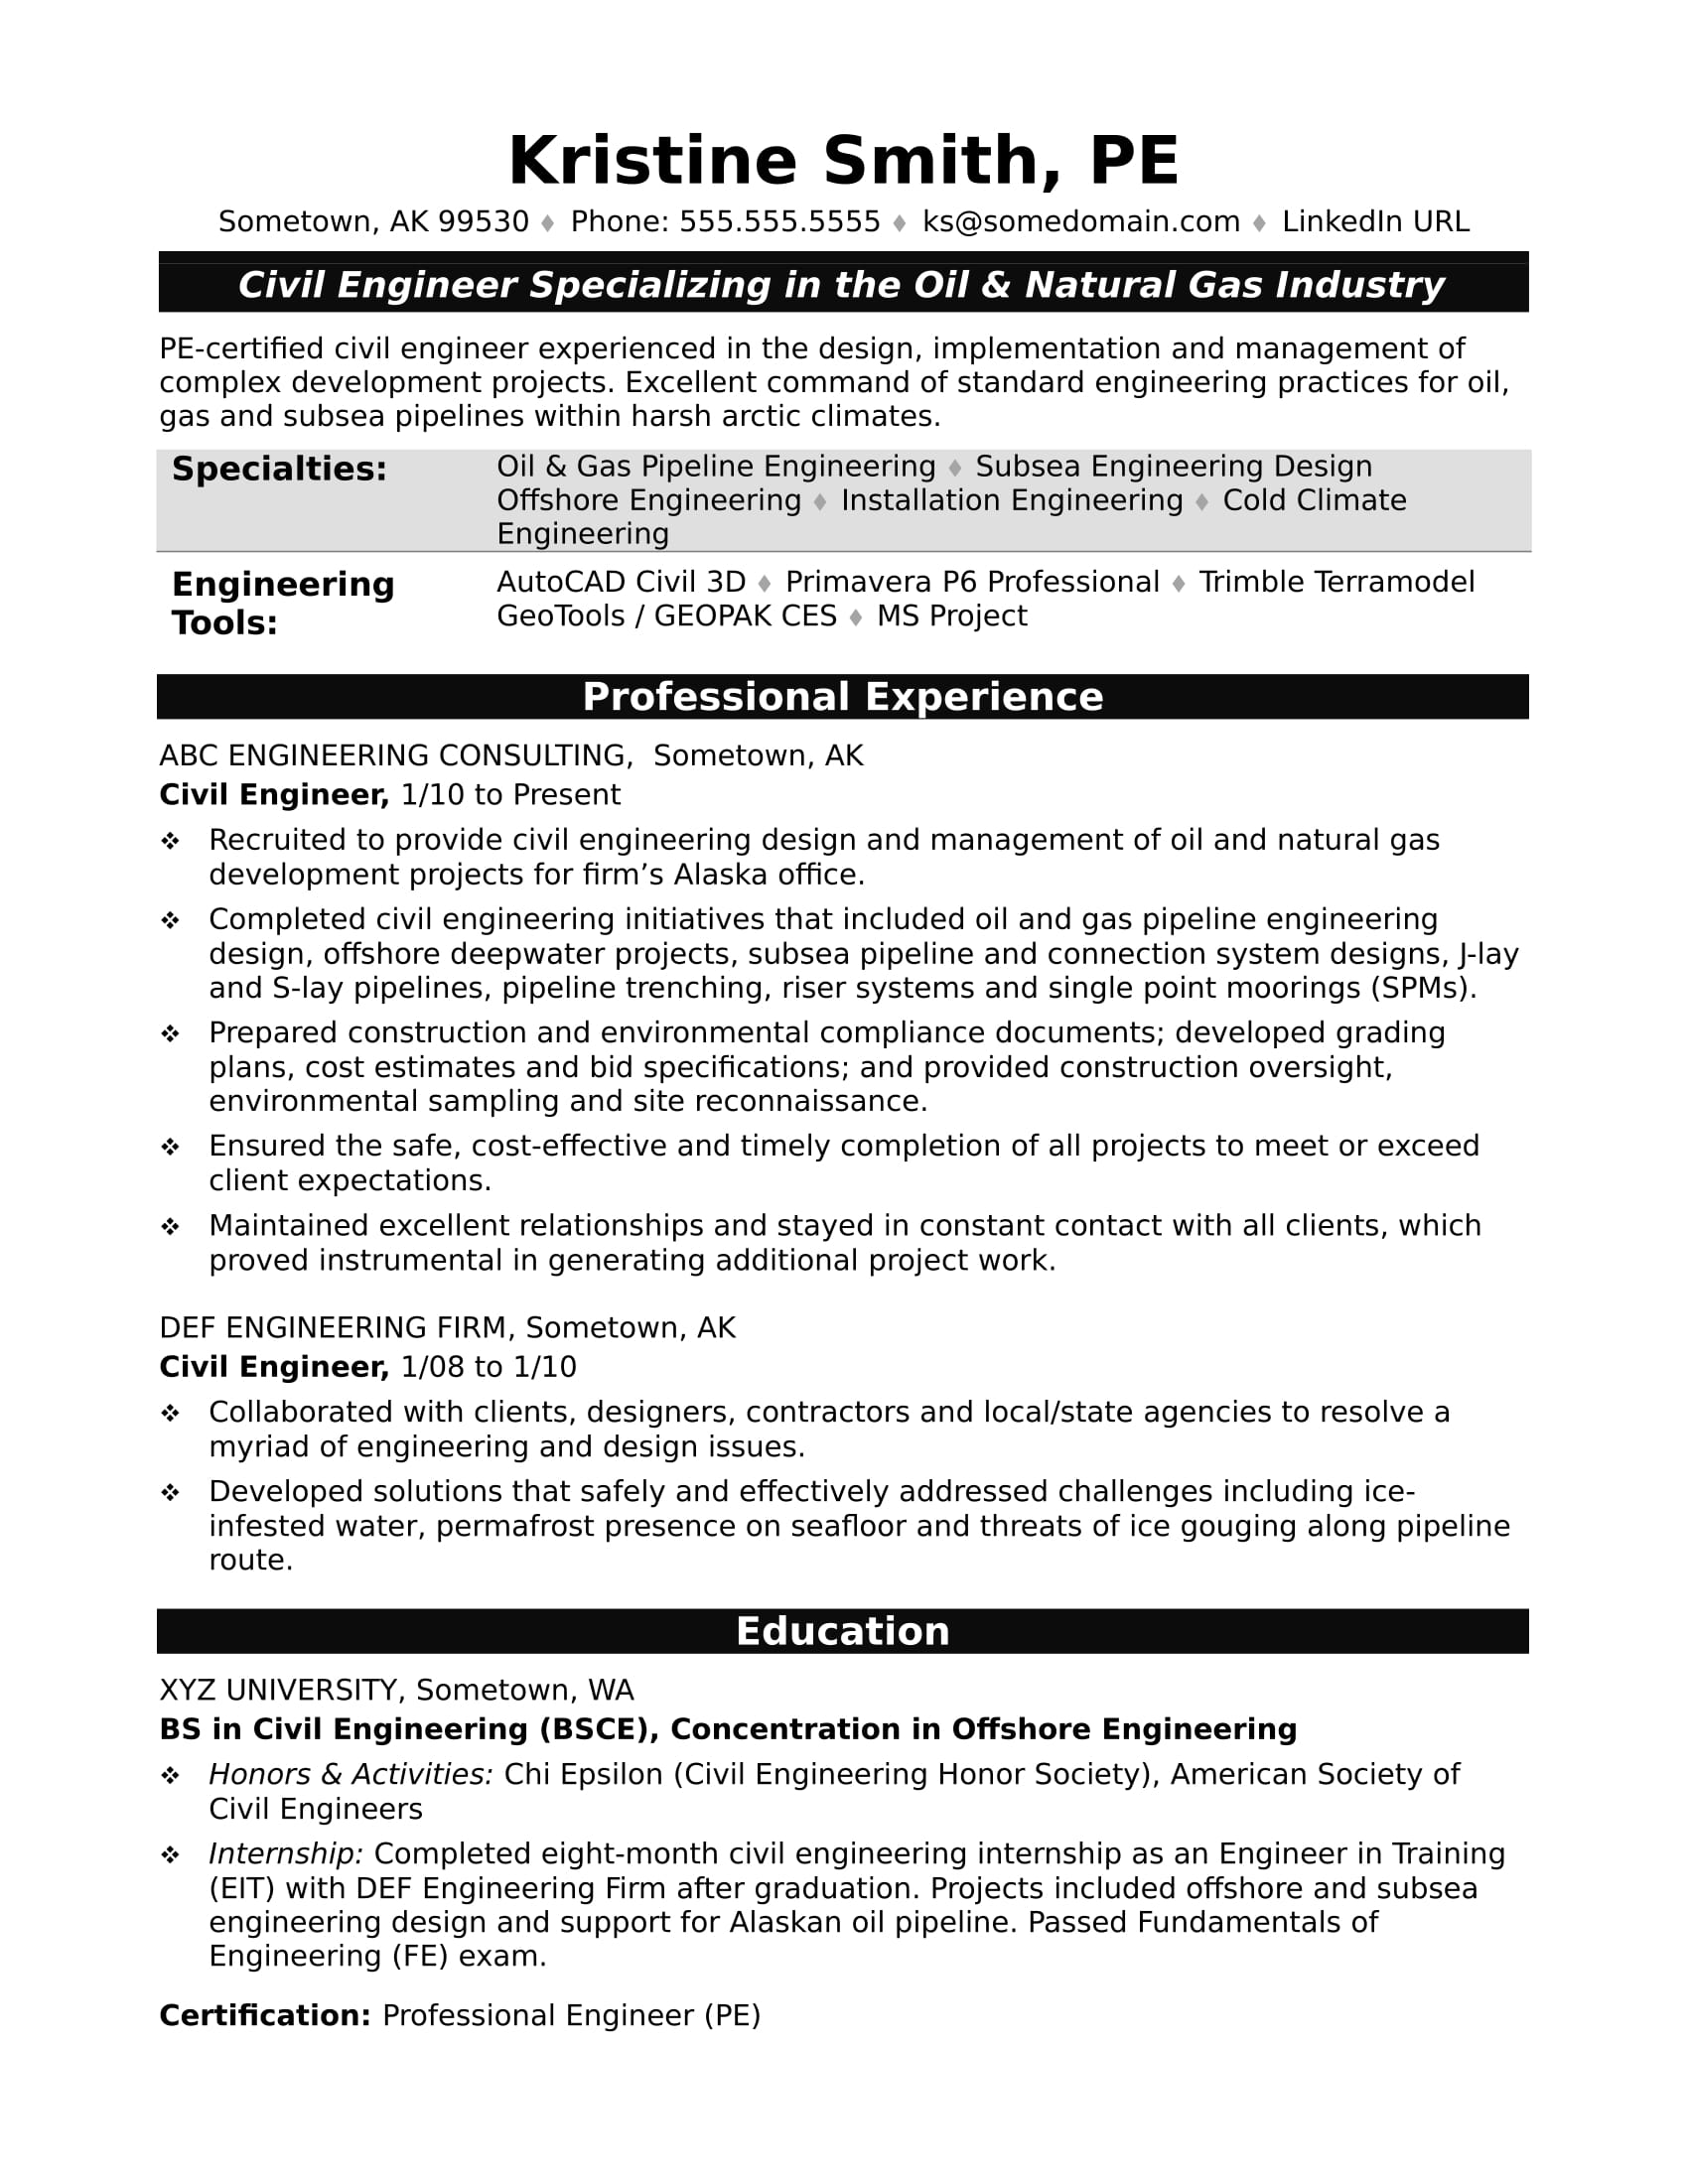 resume for civil engineer - Sample Resume Entry Level Civil Engineer